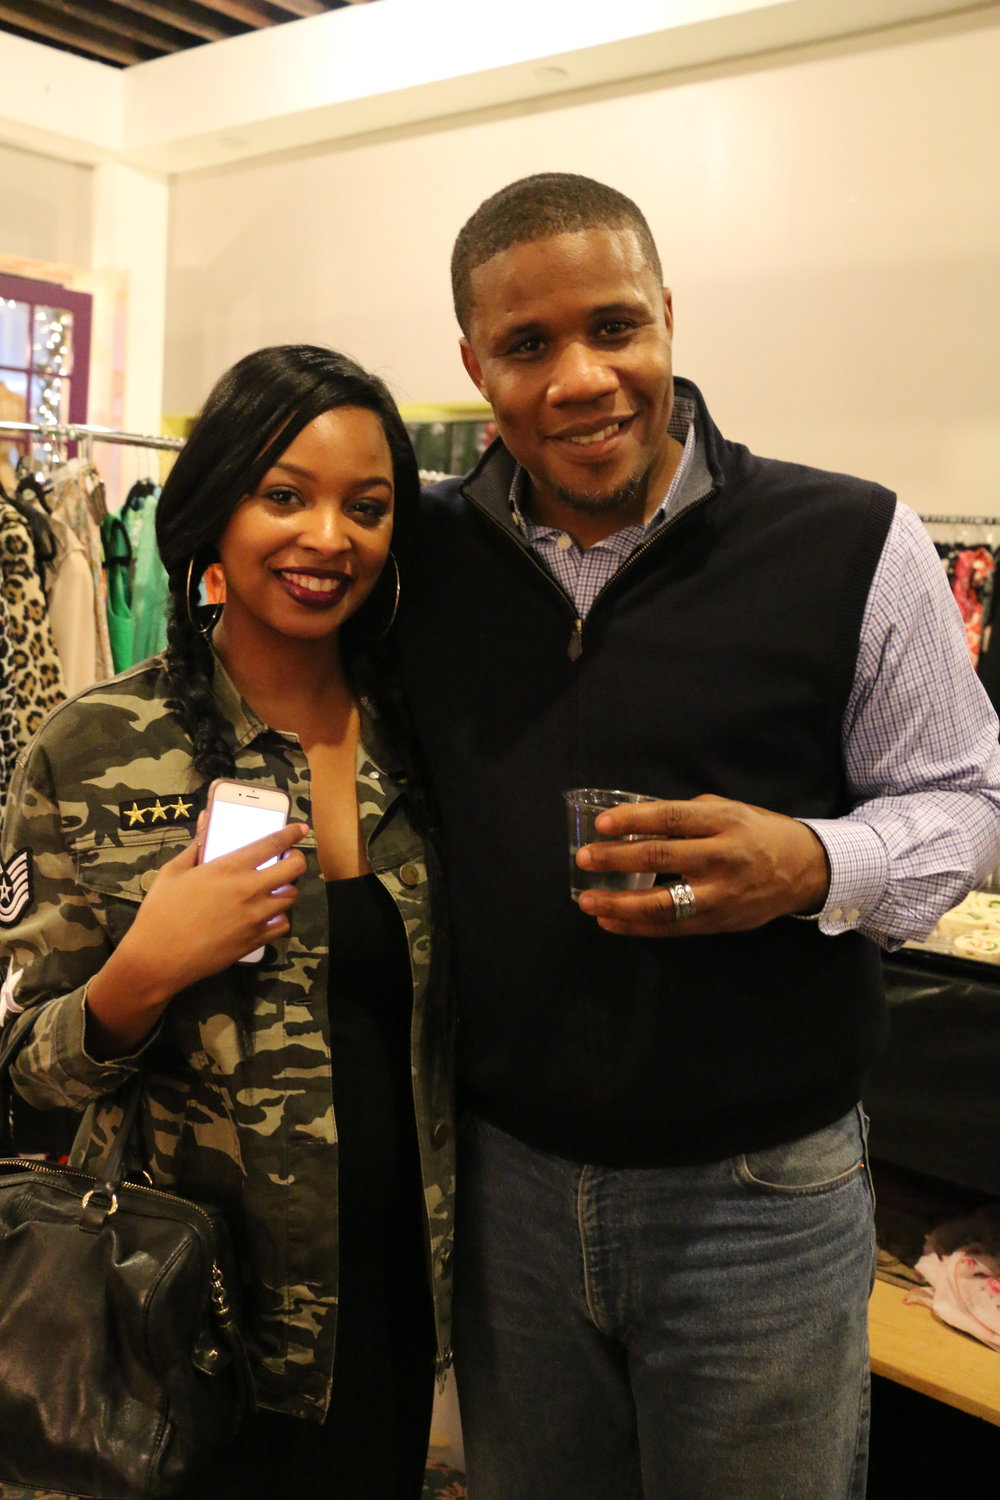 Pictured with one of two of the Owner's of Thrift On The Ave, Christopher Pratner